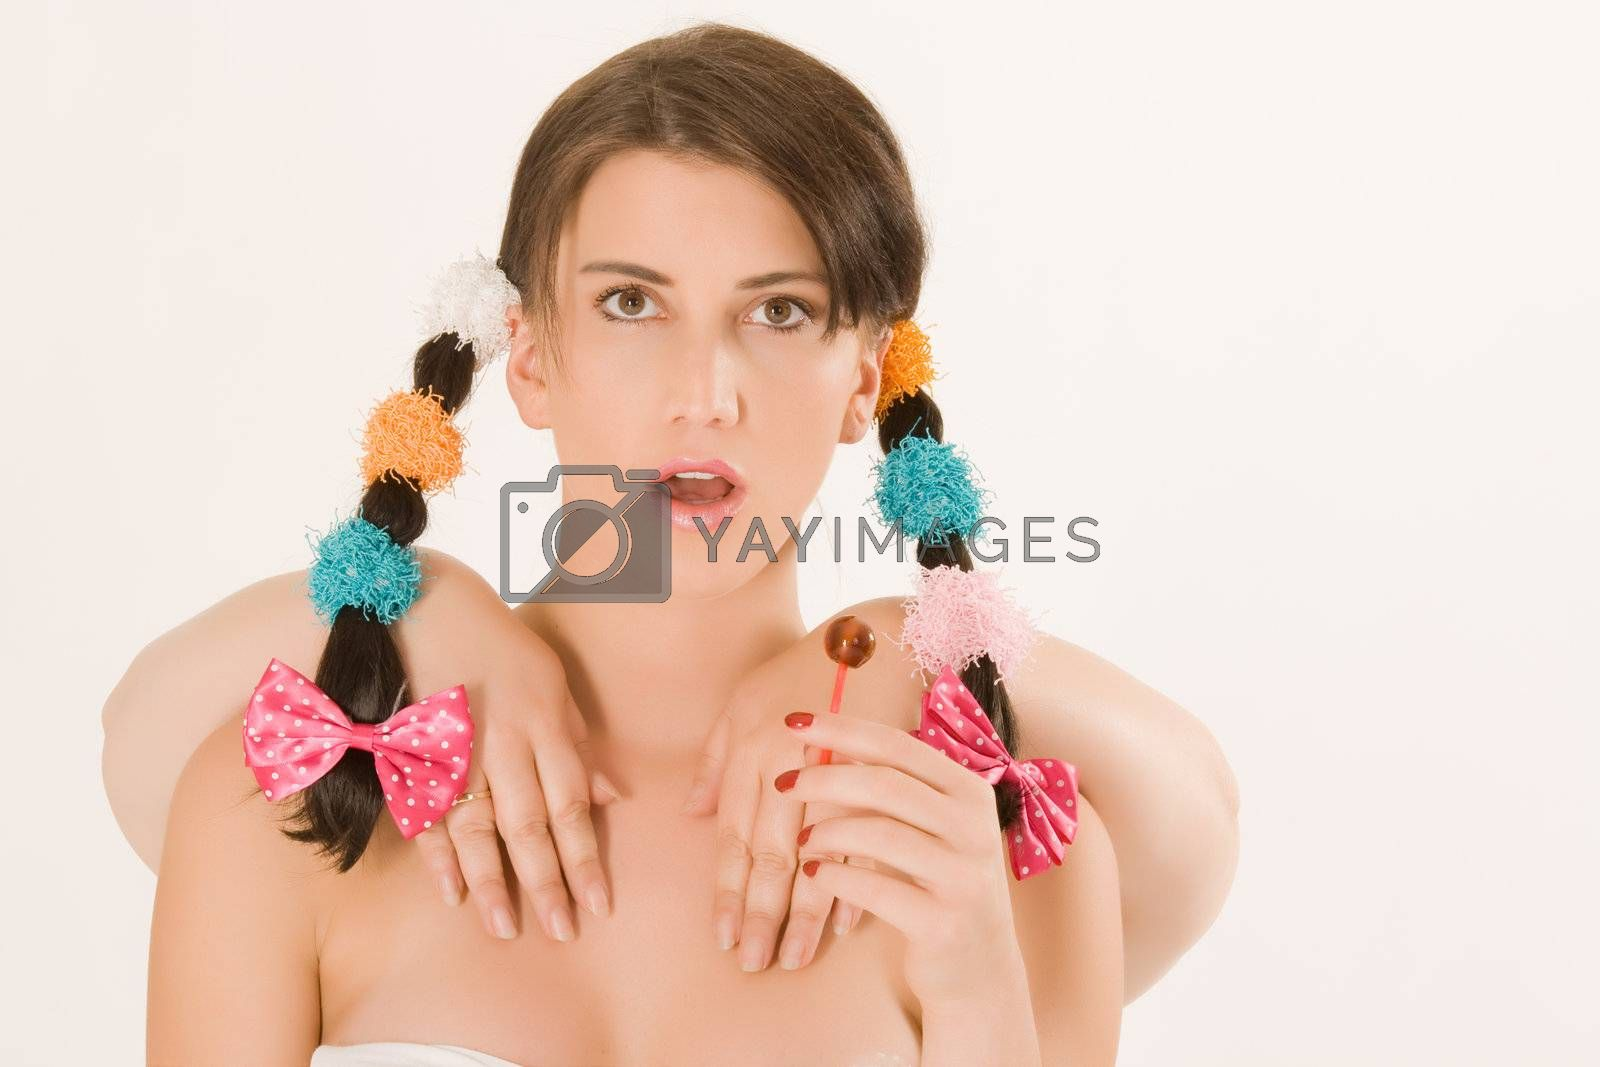 Young woman with two braids and colorful four hands